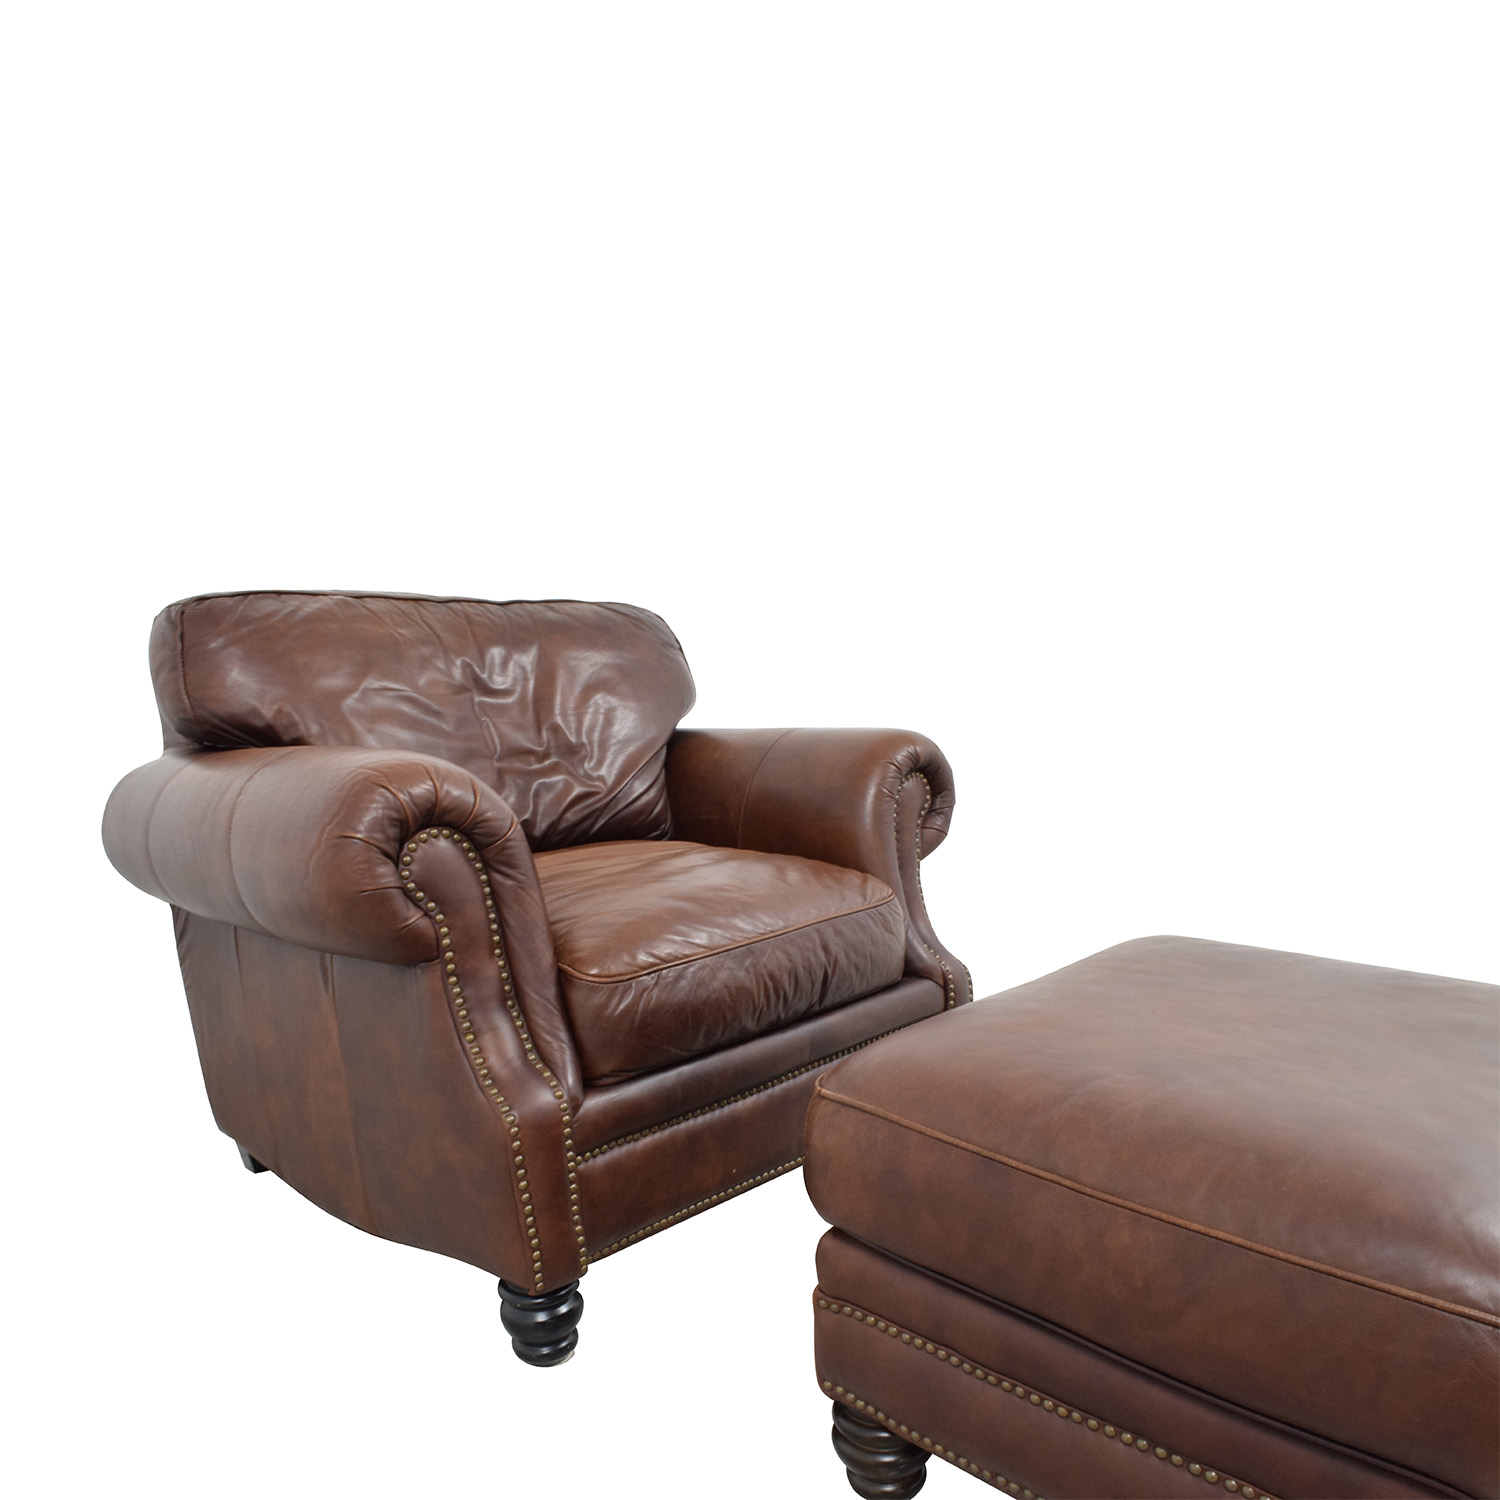 accent chairs to go with brown leather sofa price of set in stan 75 off studded armchair matching